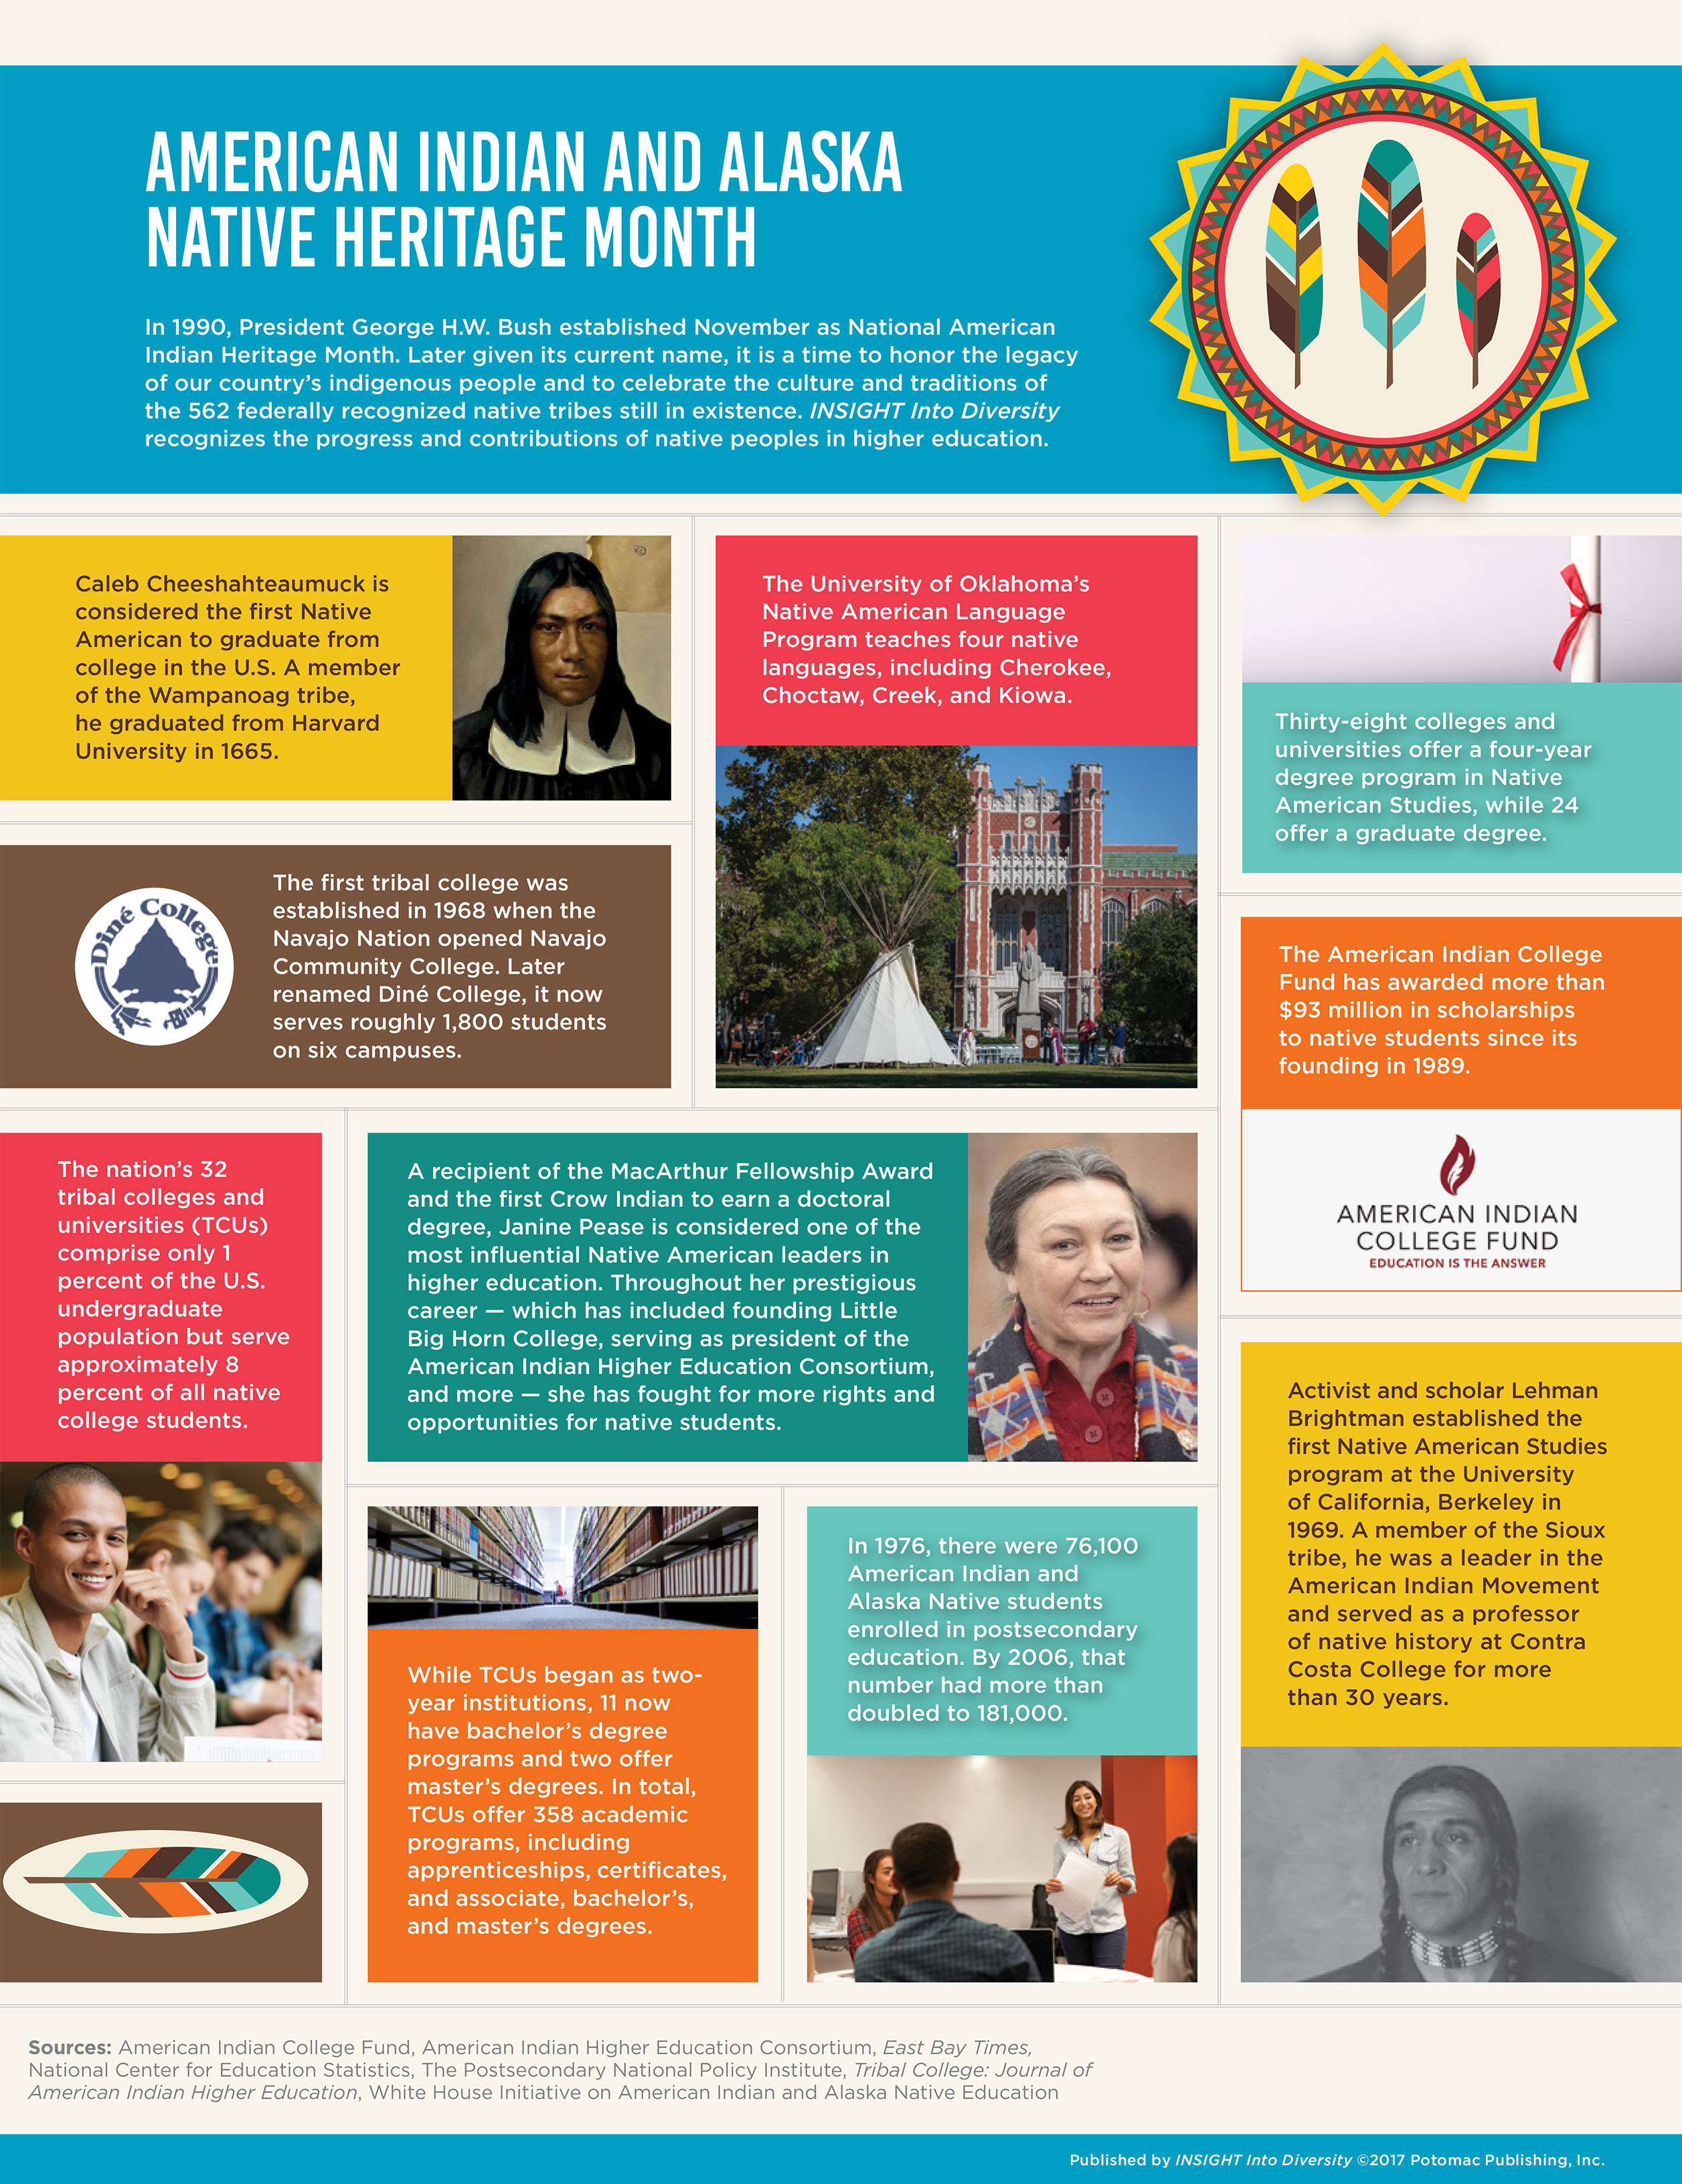 American Indian and Alaska Native Heritage Month infograph created by Insight Into Diversity